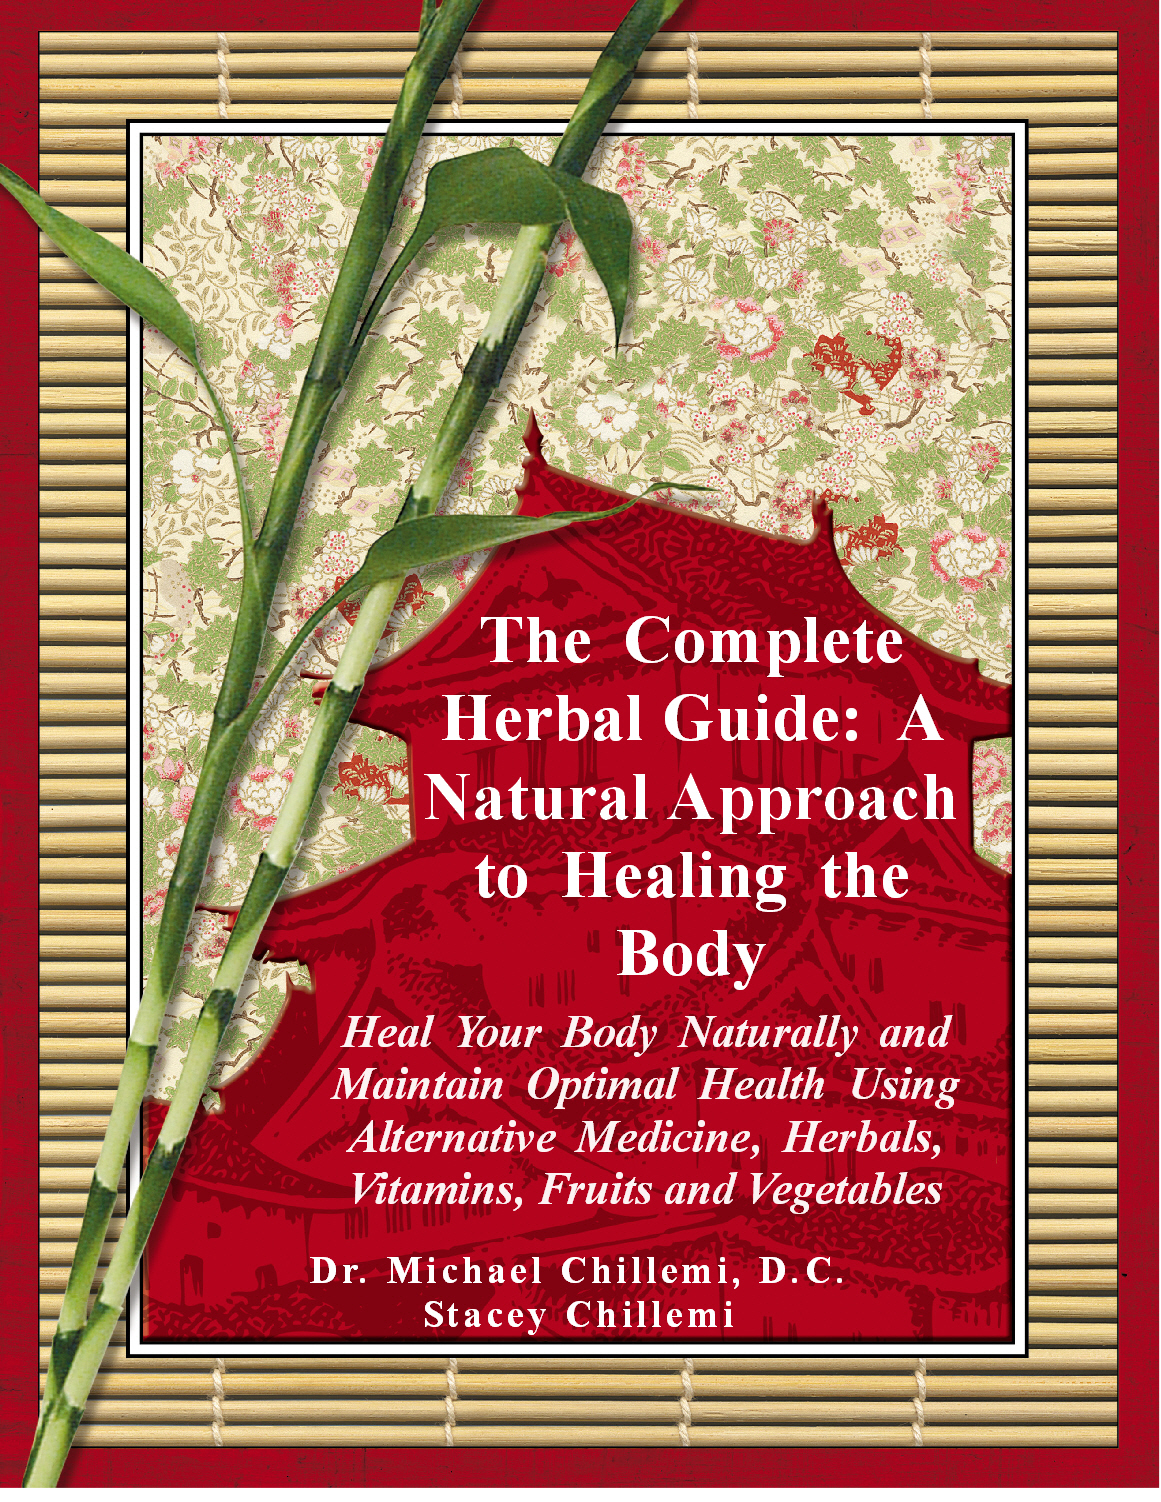 The Complete Herbal Guide: Heal Your Body Naturally and Maintain Optimal Health Using Alternative Medicine, Herbals, Vitamins, Fruits and Vegetables